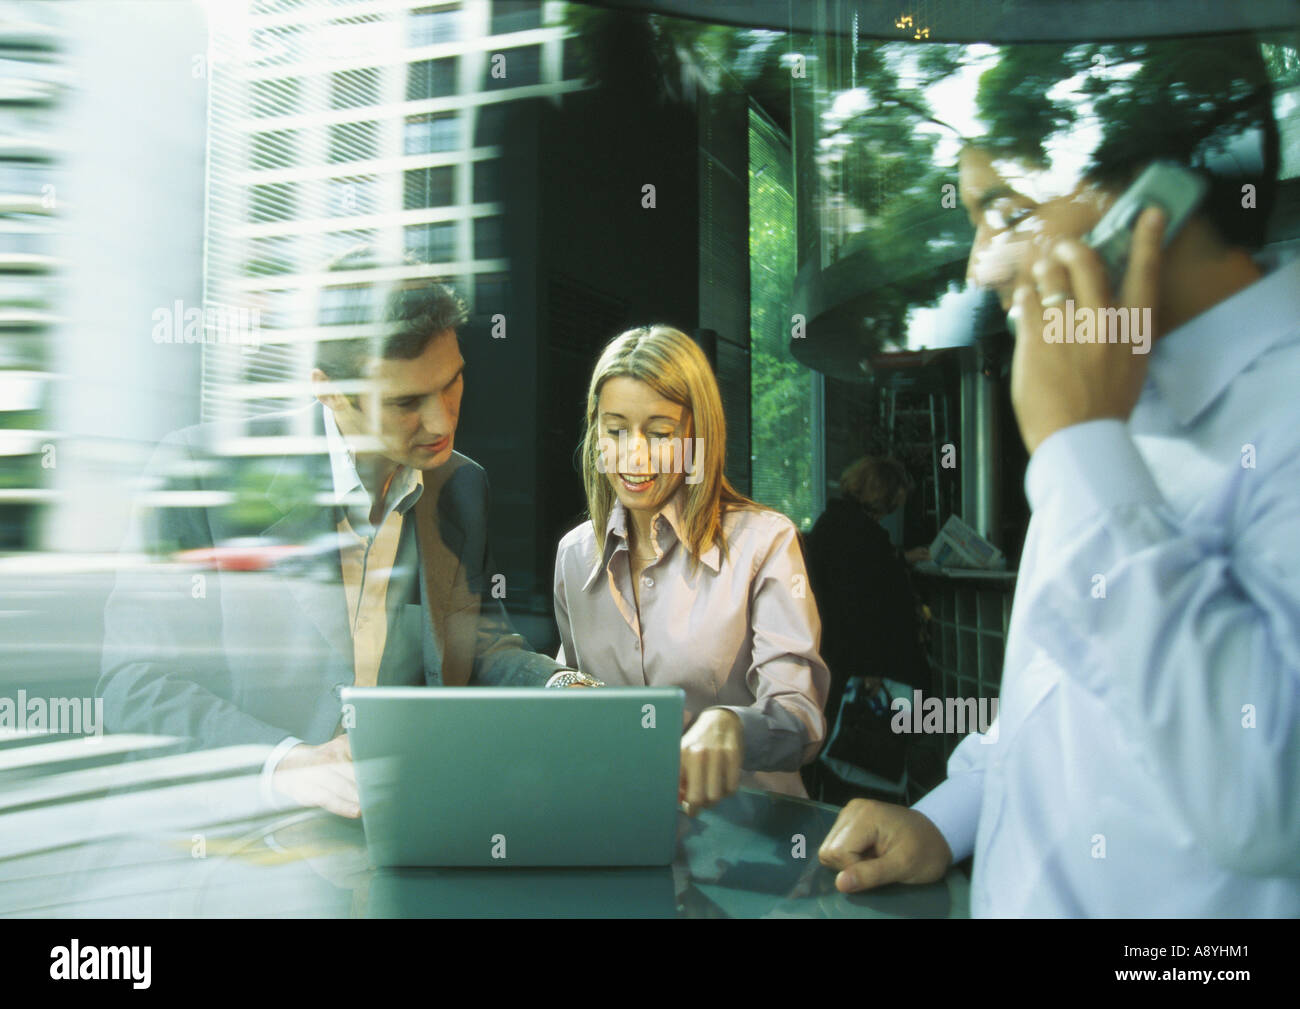 Businessman and businesswoman using laptop while second man uses cell phone - Stock Image